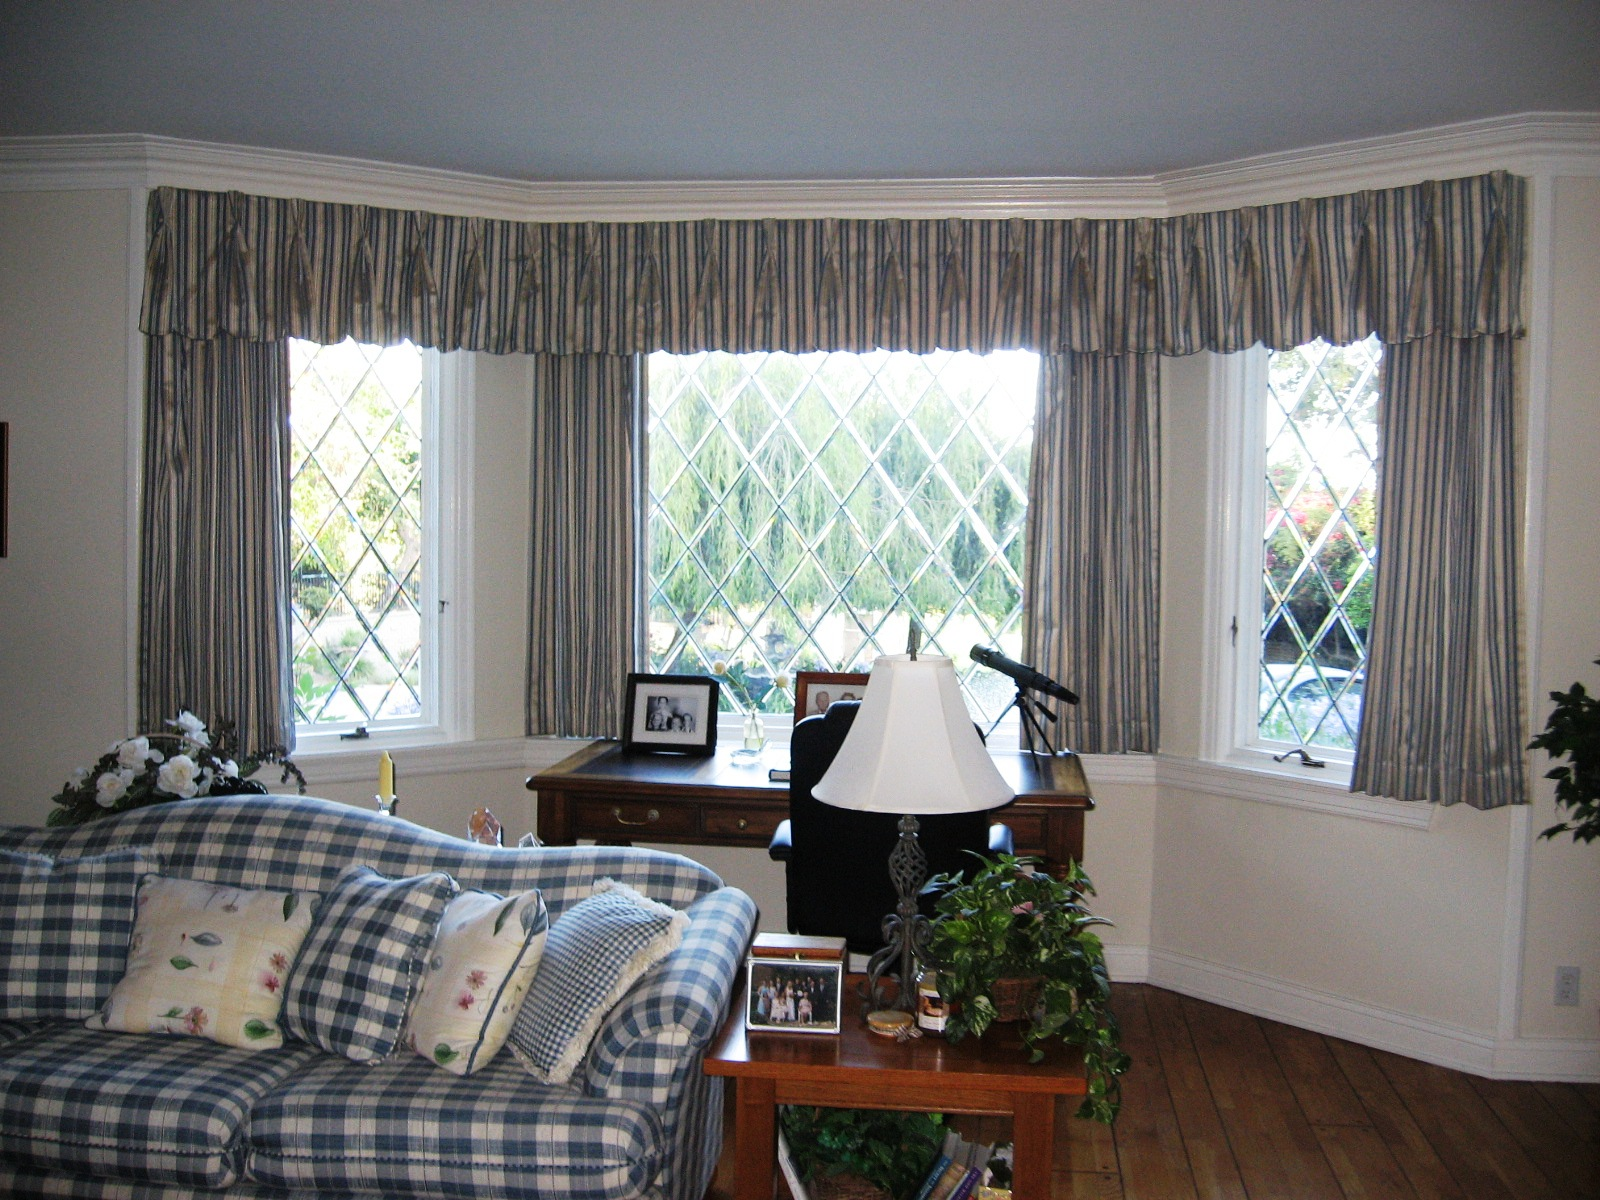 Window Drapes | Windows Drapes Ideas | 132 Curtains